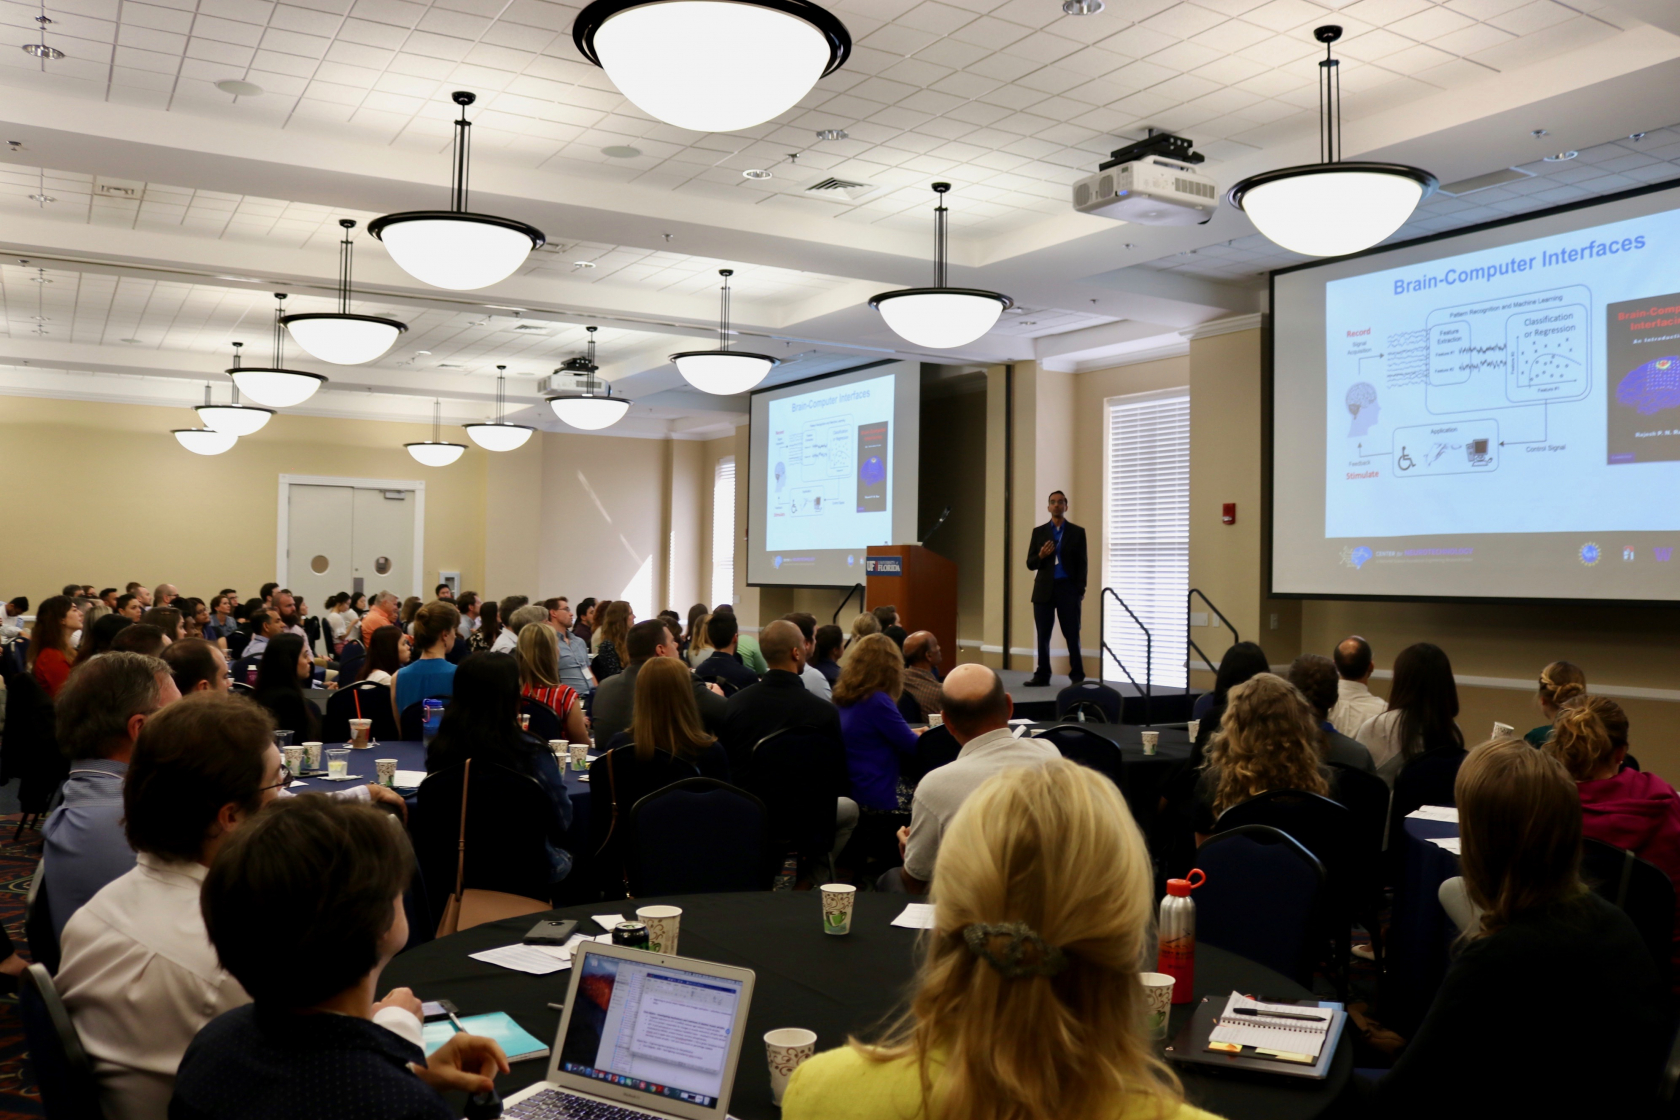 Rajesh Rao, PhD, CJ and Elizabeth Hwang Professor at the University of Washington (UW), gives a keynote presentation to over 200 guests at the 2019 Neuromuscular Plasticity Symposium.